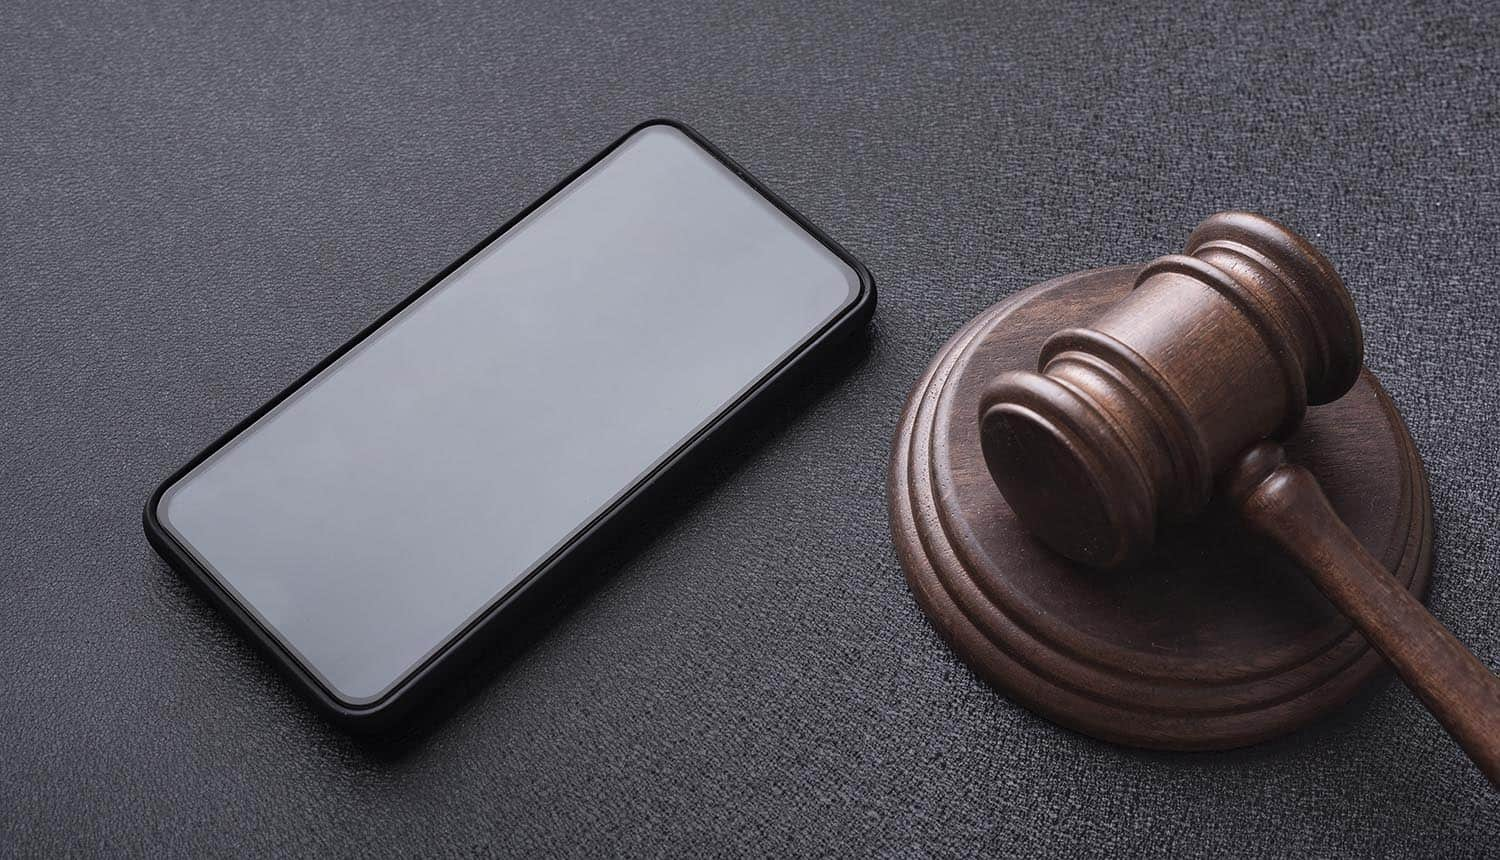 Smartphone and judges gavel on table showing technology risks